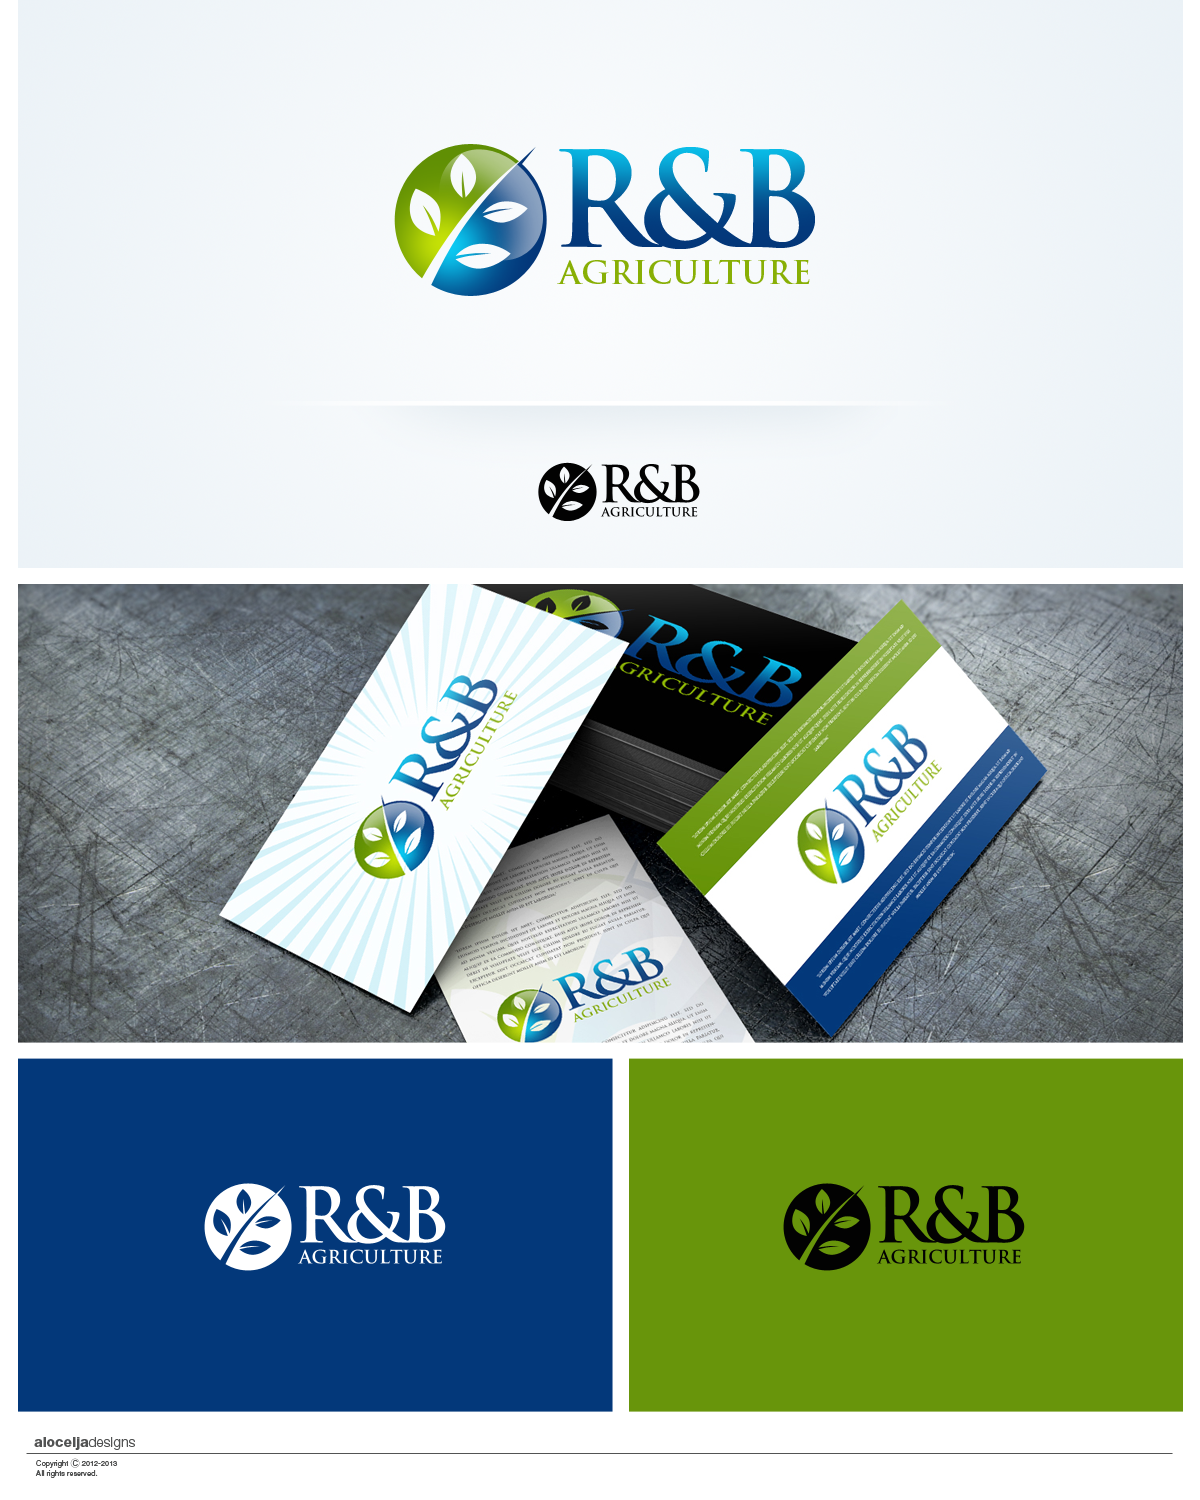 Logo Design by alocelja - Entry No. 57 in the Logo Design Contest Captivating Logo Design for R & B Agriculture.